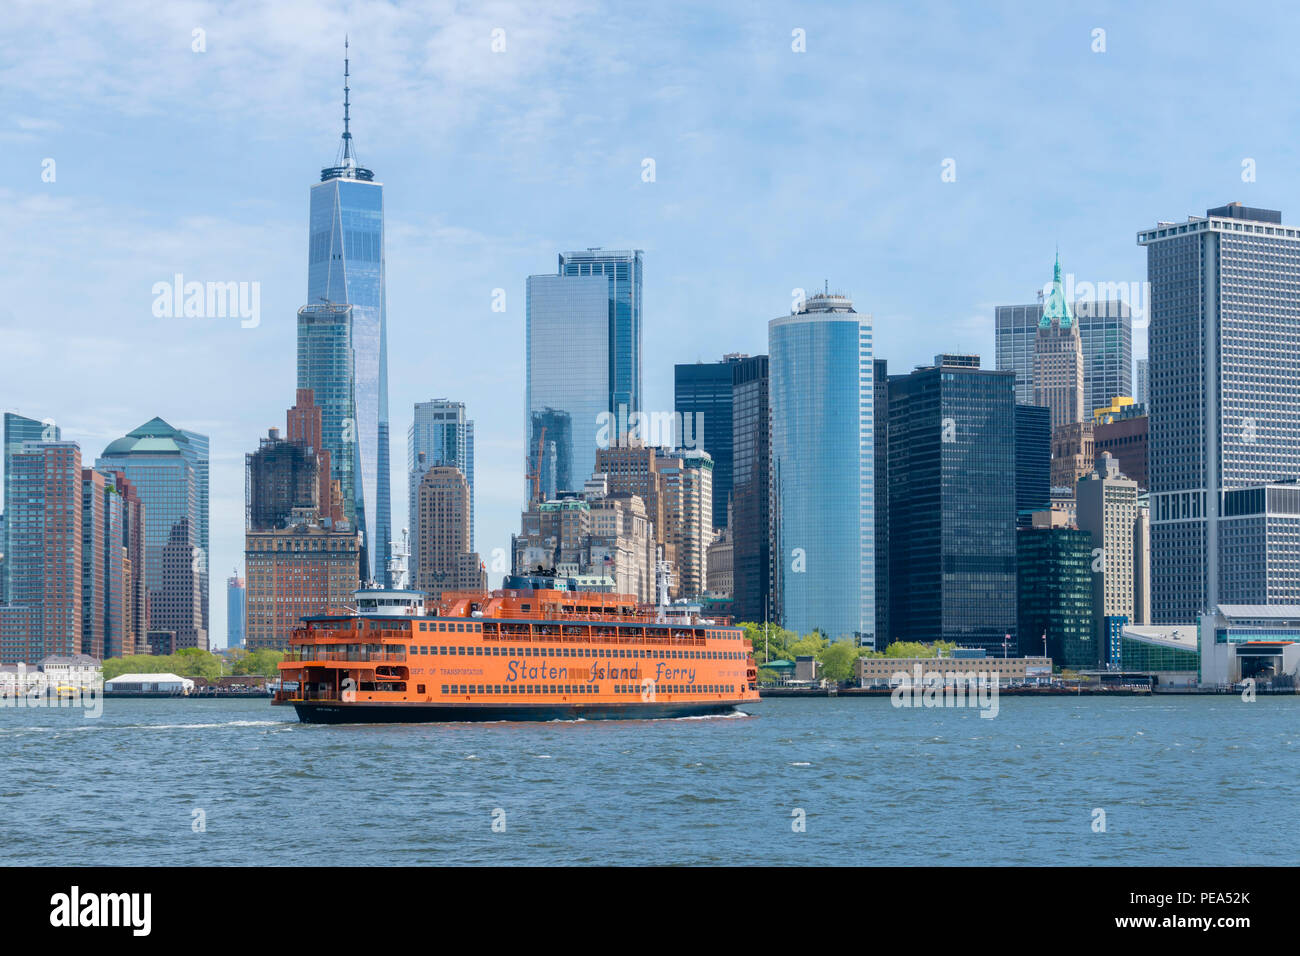 Staten Island Ferry sailing towards Lower Manhattan in New York City Stock Photo